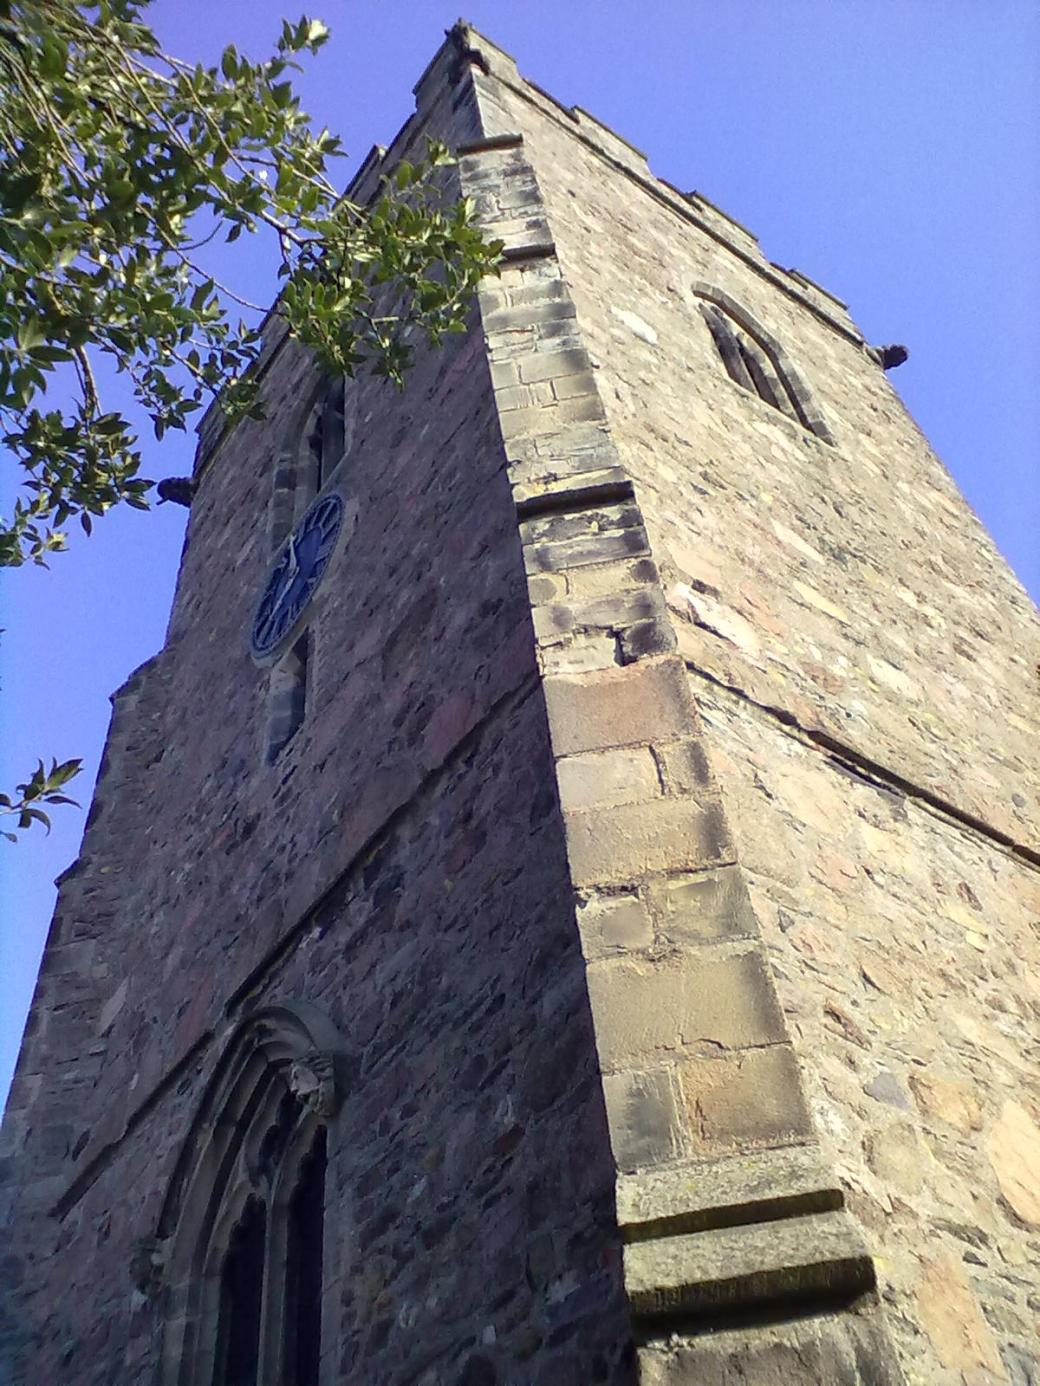 The Tower at St Michael & All Angels, Thurmaston